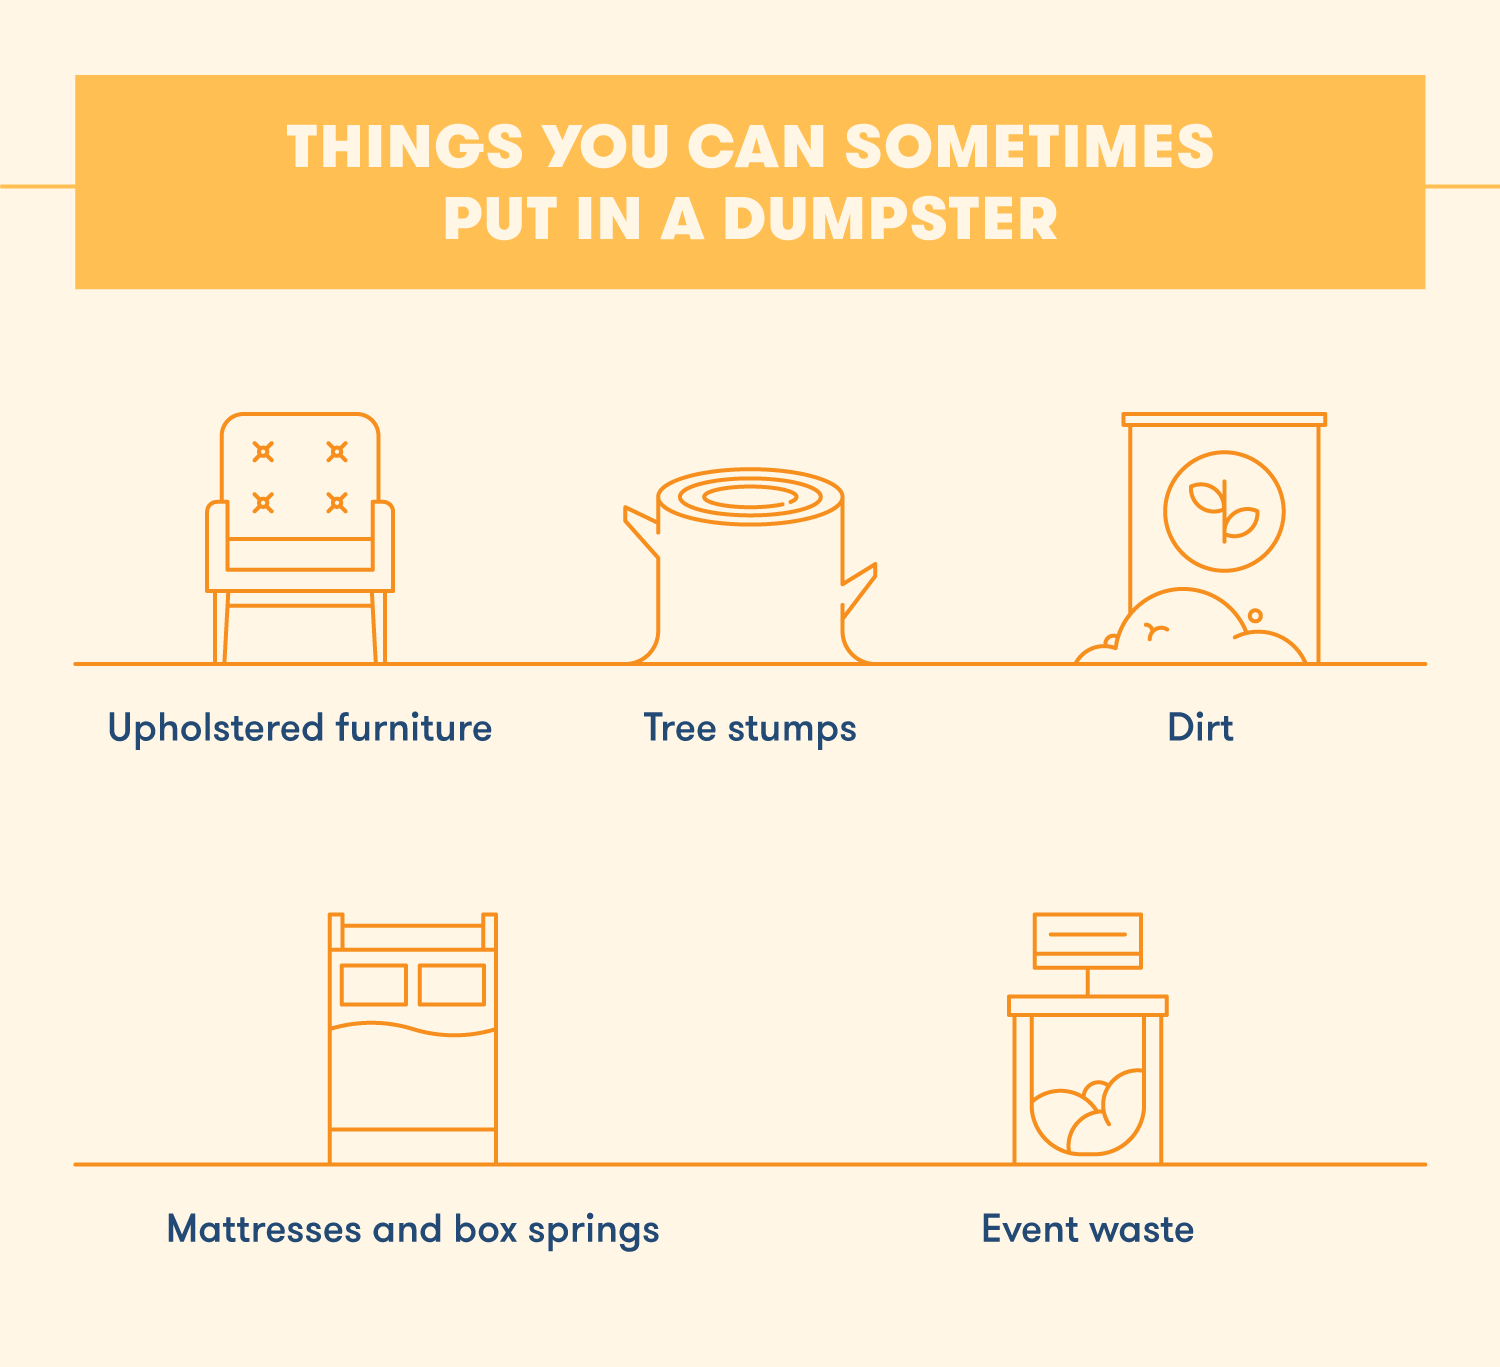 Graphic showing items that can sometimes be placed in a dumpster depending on the type and regulations.